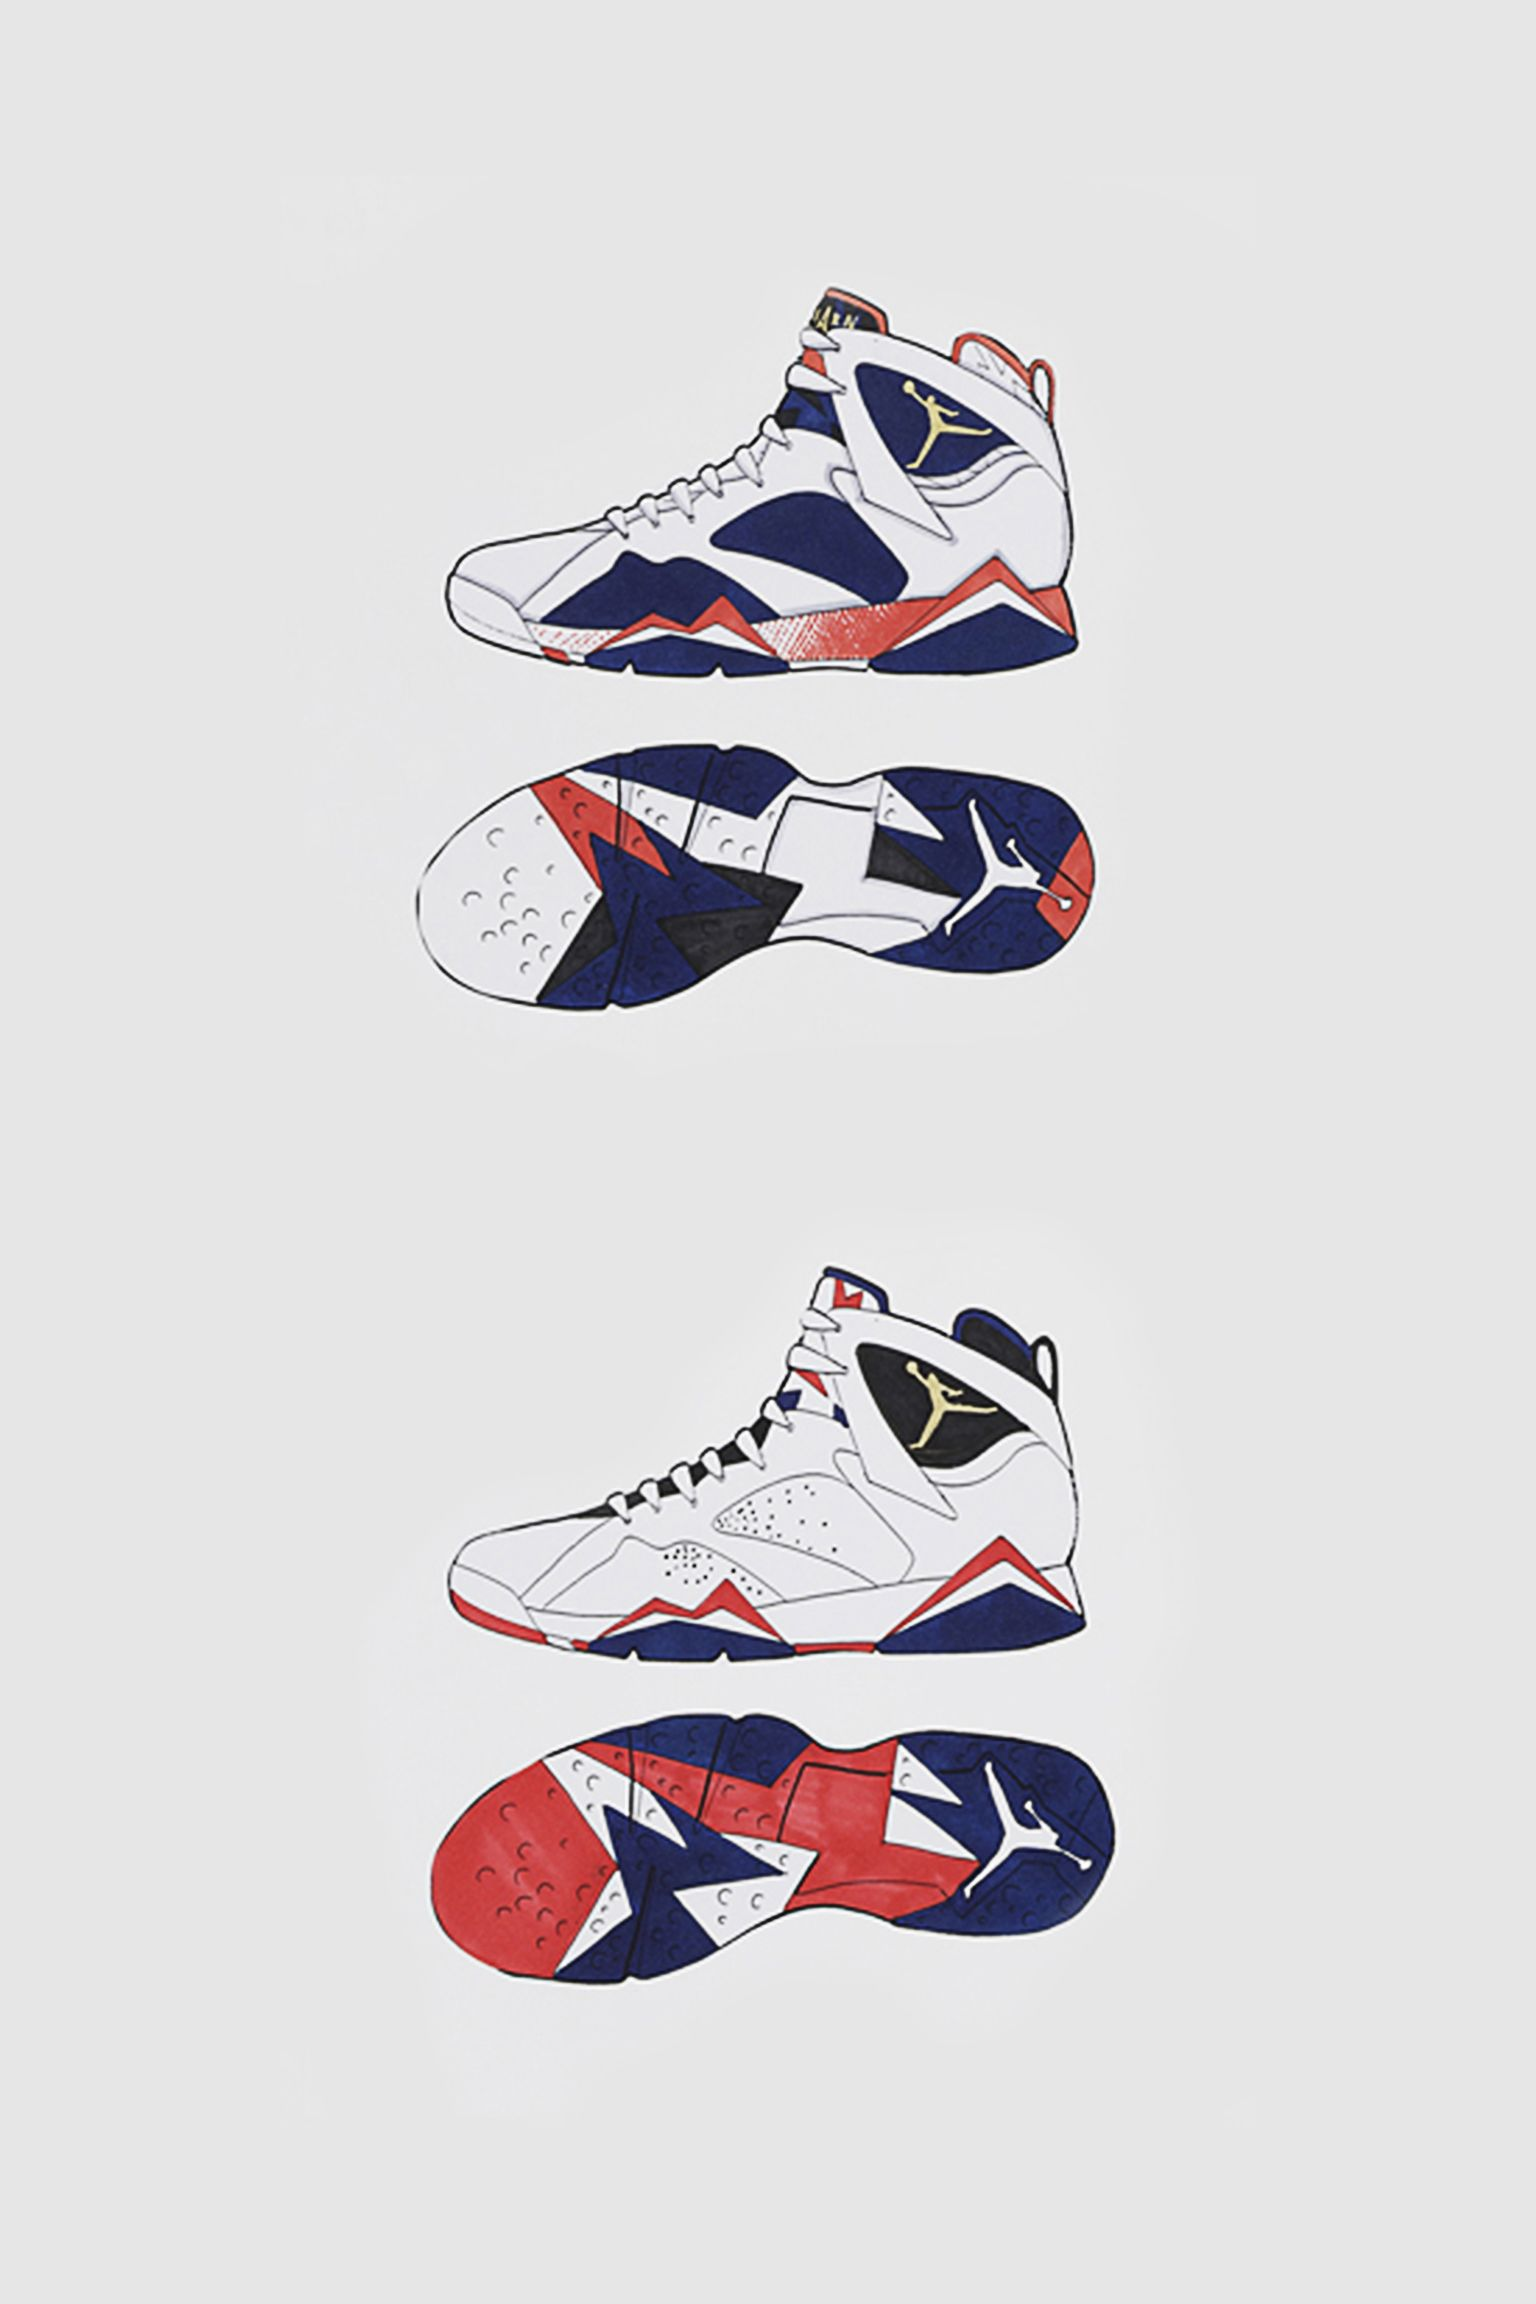 Air Jordan 7 'Tinker Alternate' Release Date